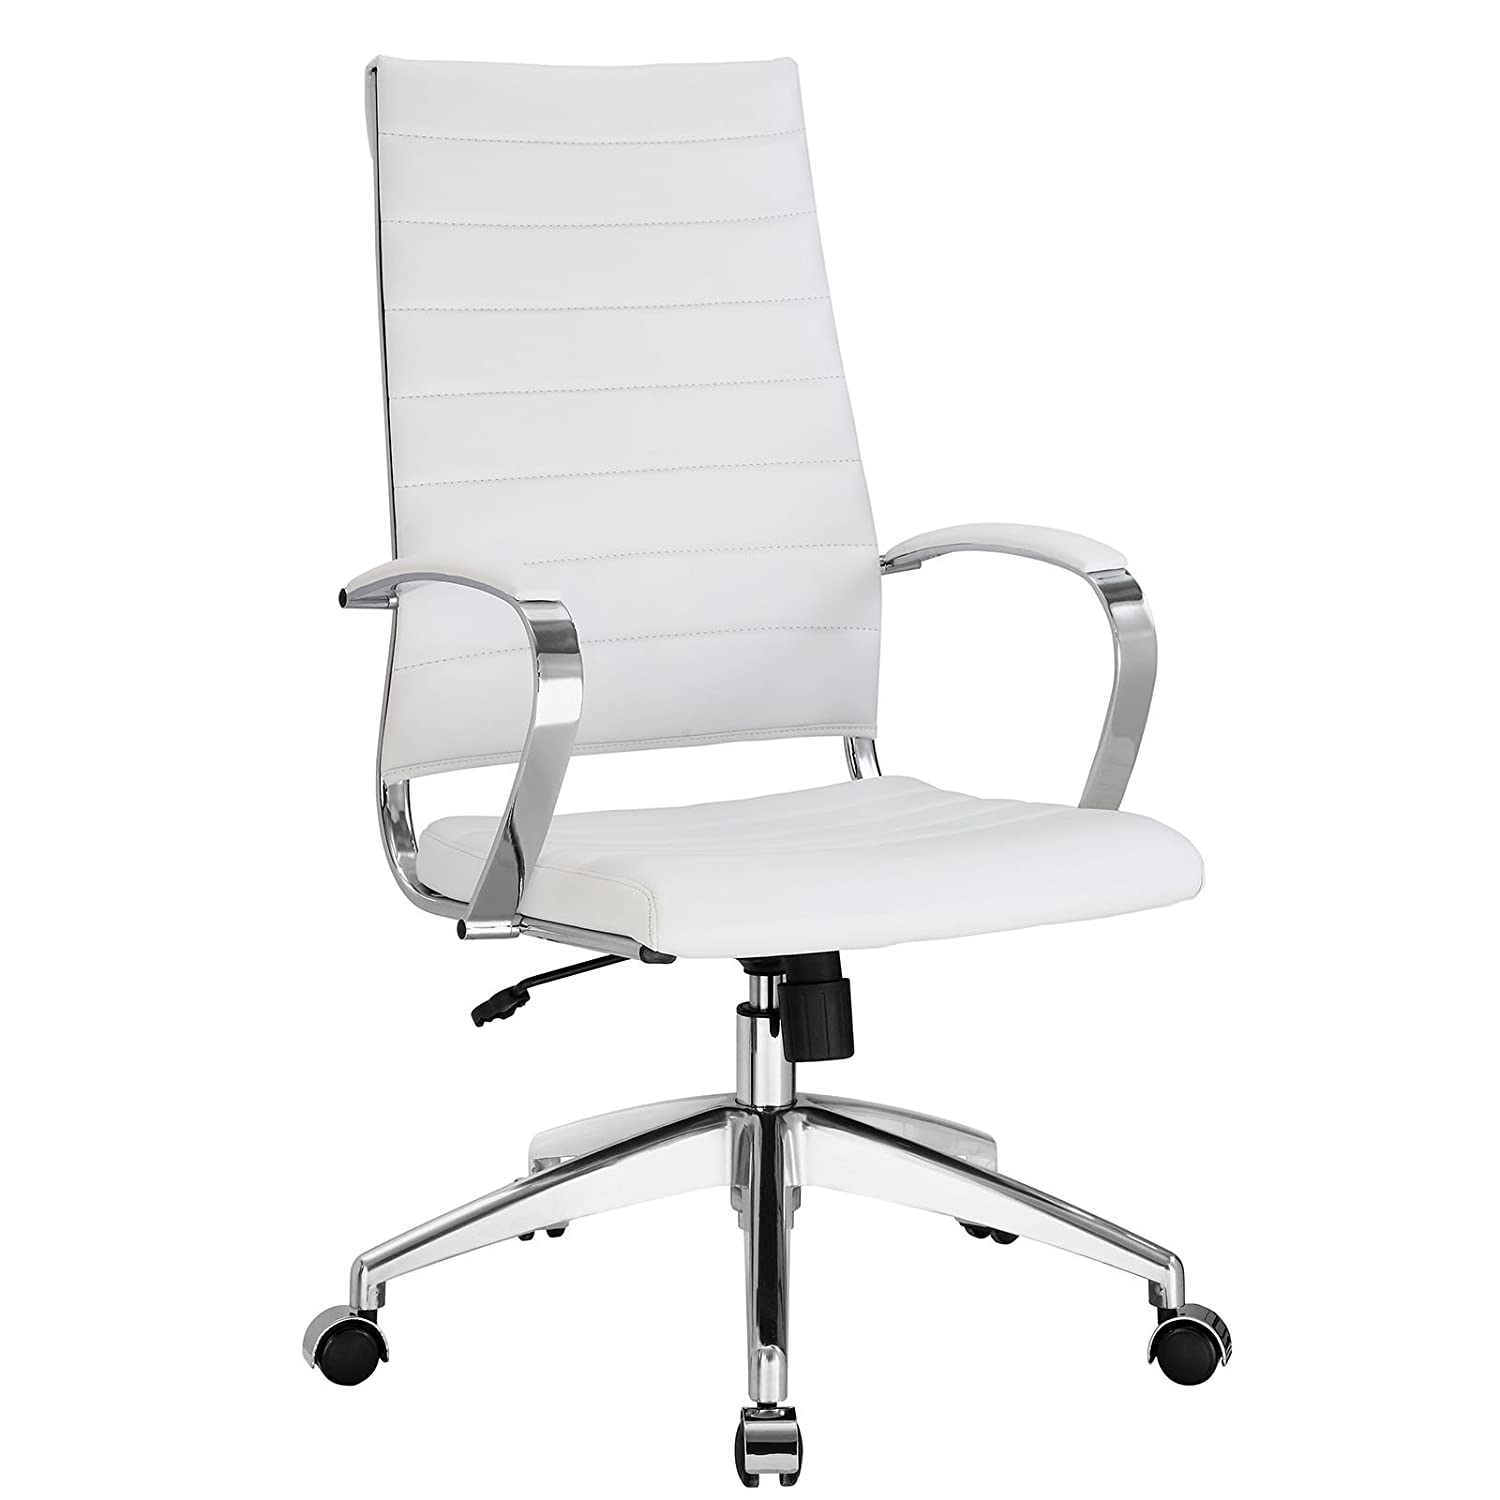 Exceptionnel Best Rated White Desk Chair Choices On The Market